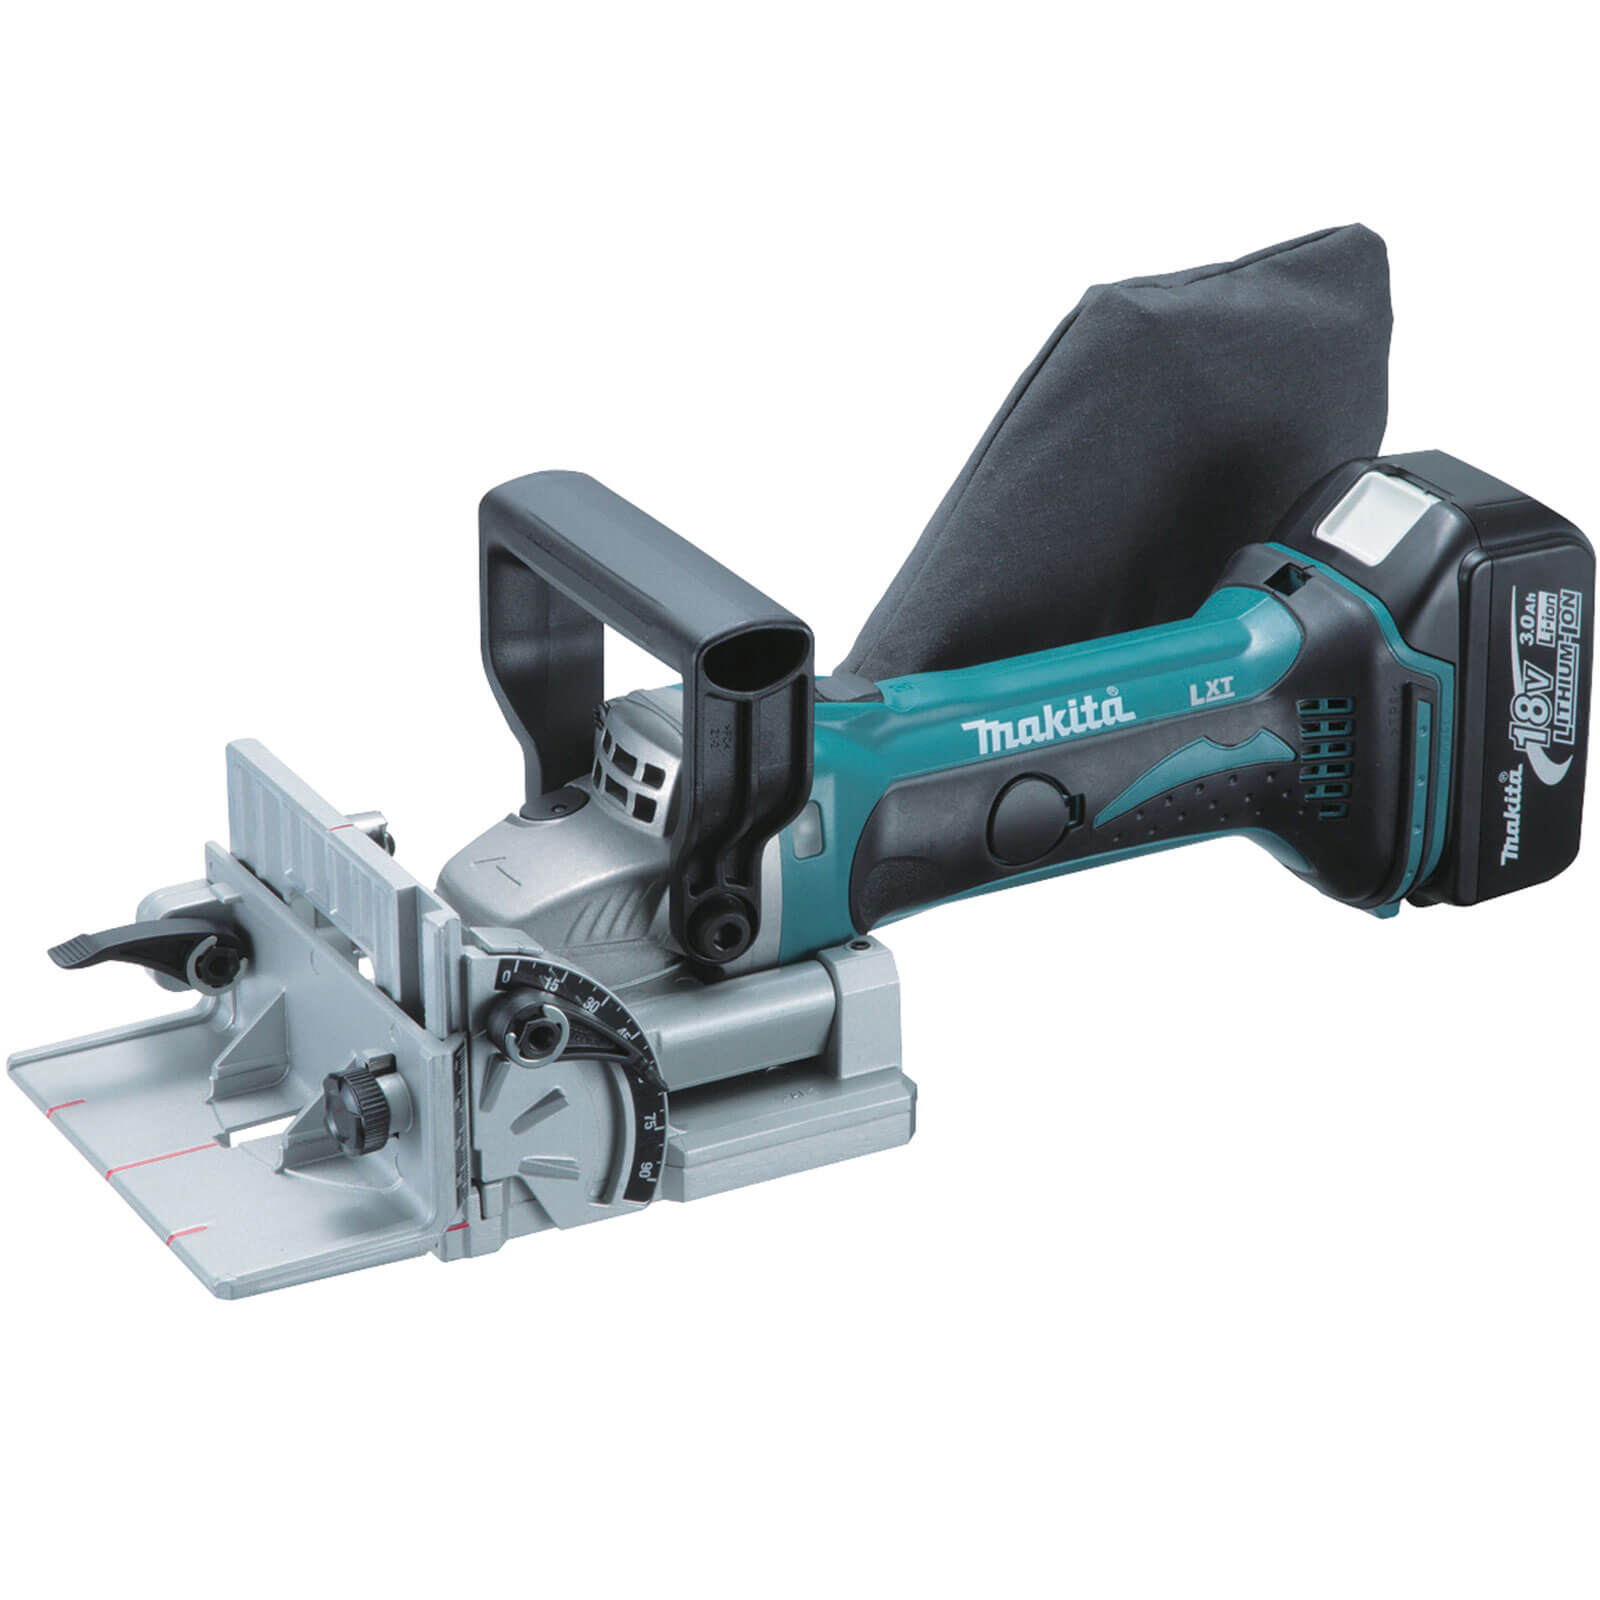 Dowel Jointer For Sale